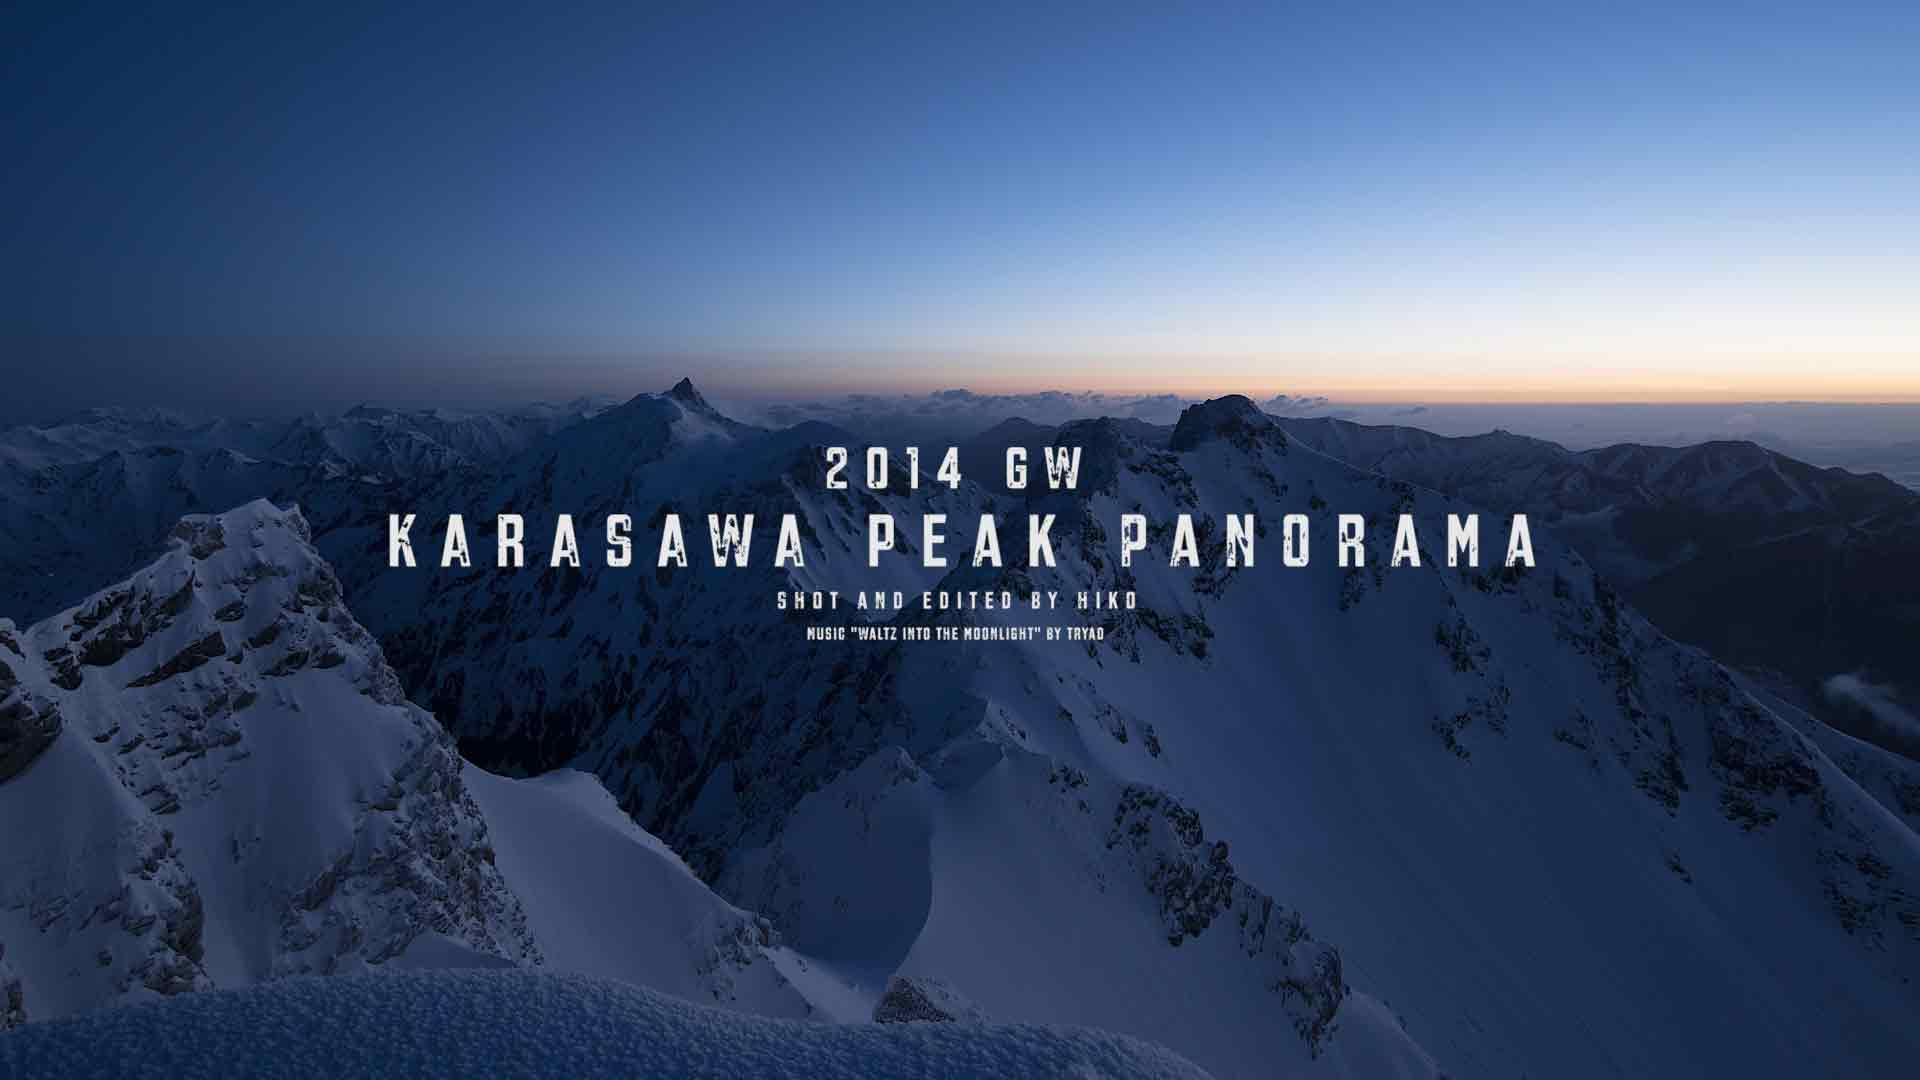 Karasawa-Peak-Panorama-Featured-Image